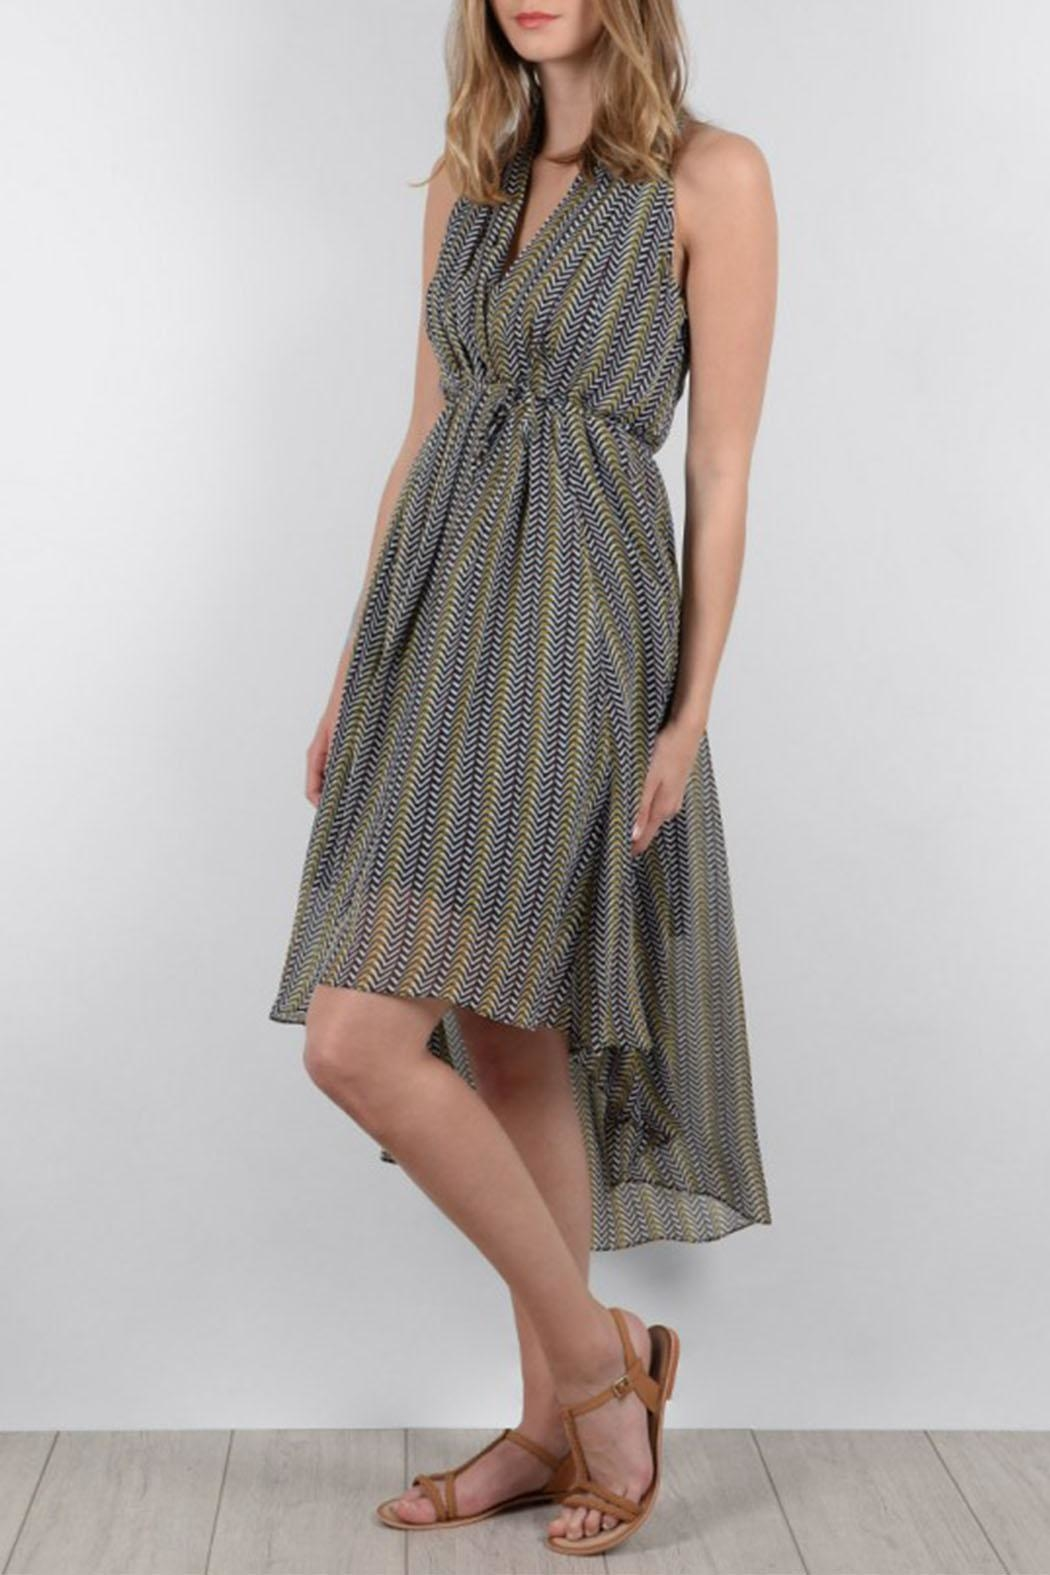 Molly Bracken Finesse Dress - Side Cropped Image